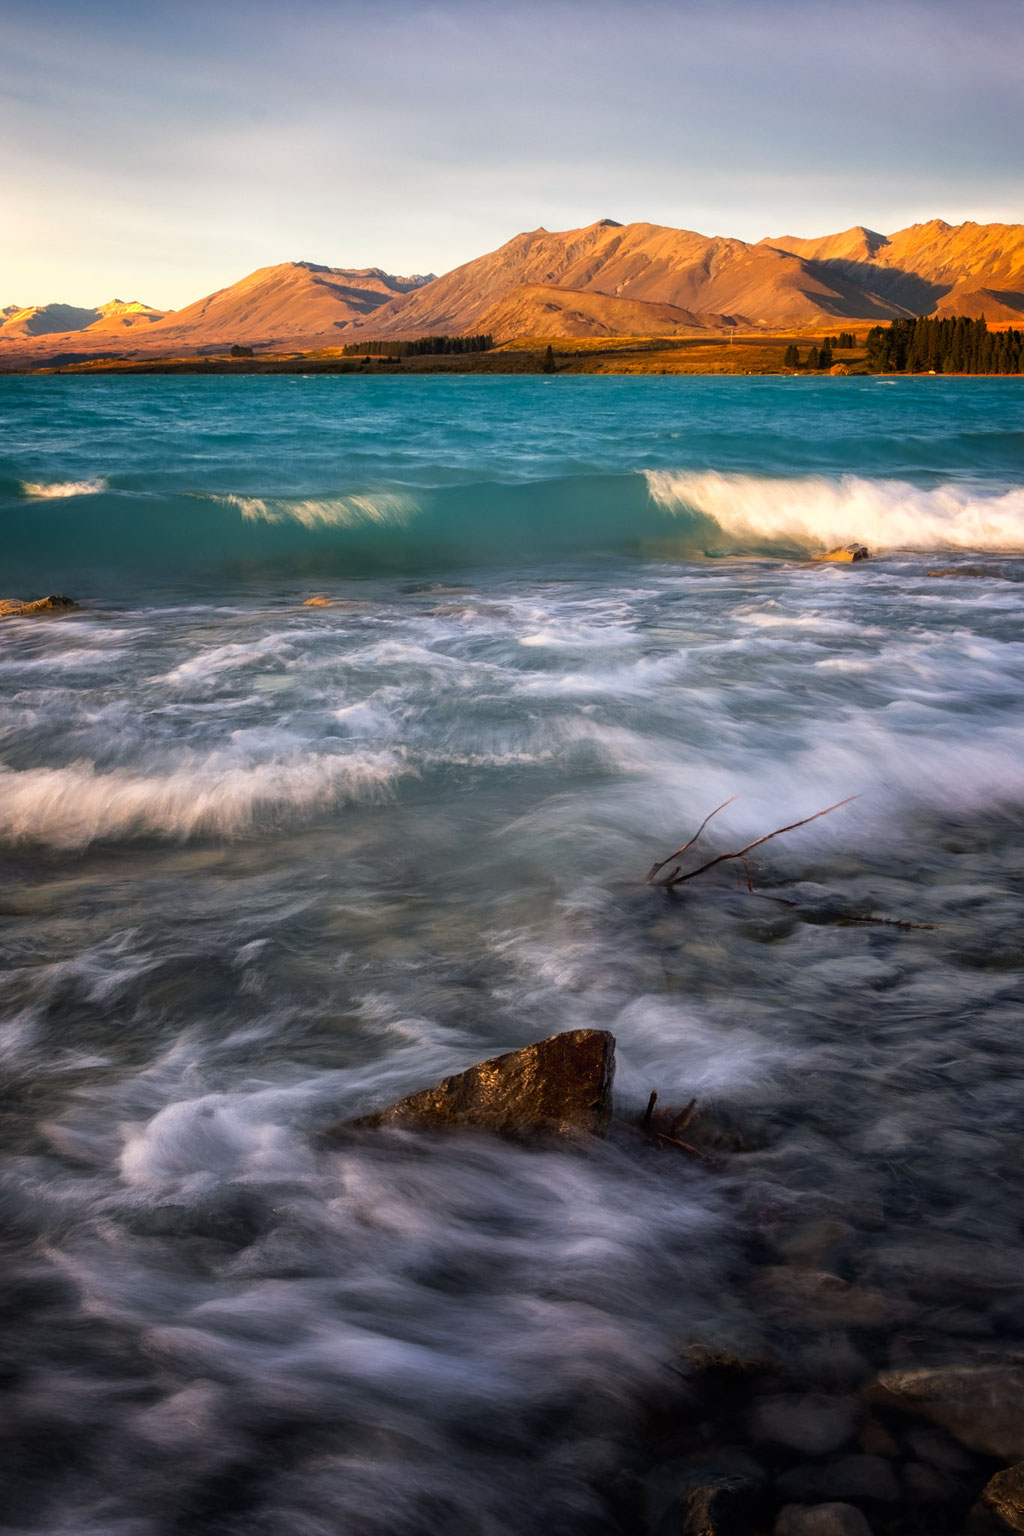 Lake Tekapo at sunset